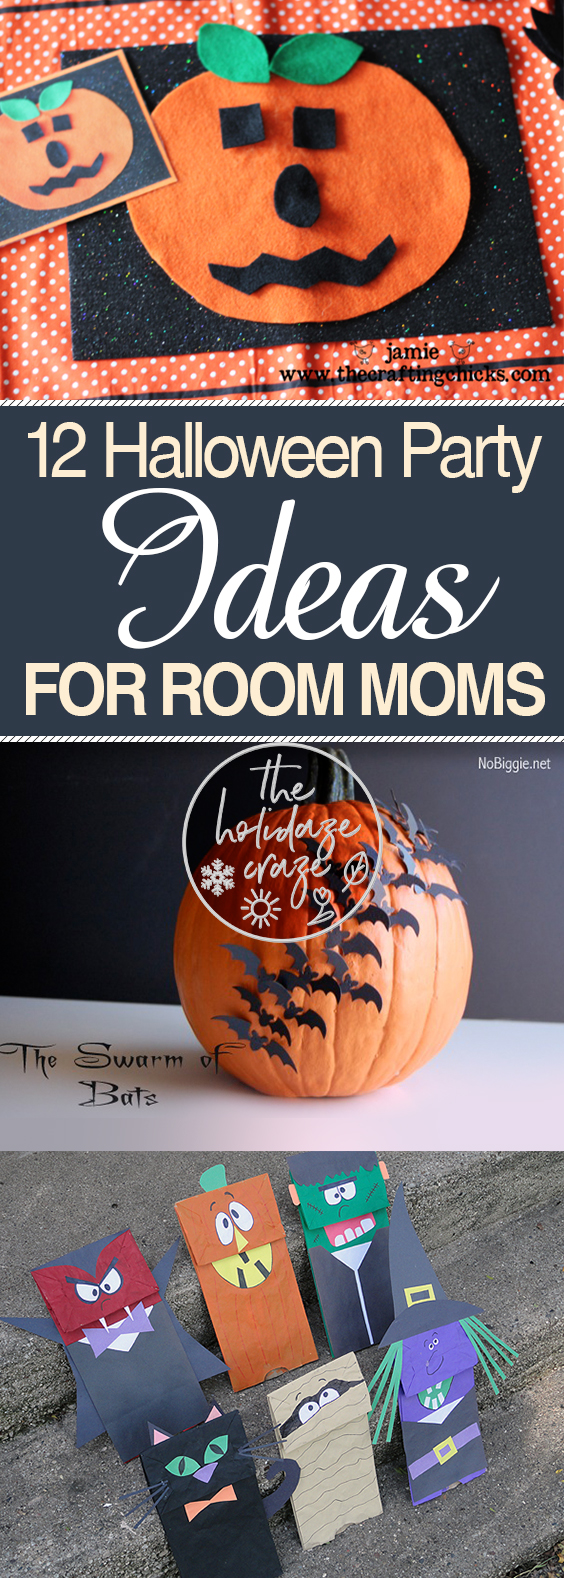 Halloween Party Ideas, Room Mom Party Ideas, Halloween Class Party, Class Party, Class Party Tips and Tricks, Halloween DIY, Classroom Parties #Halloween #HalloweenParty #DIYHalloweenParty #PartyIdeas #HolidayParty #DIYHalloween